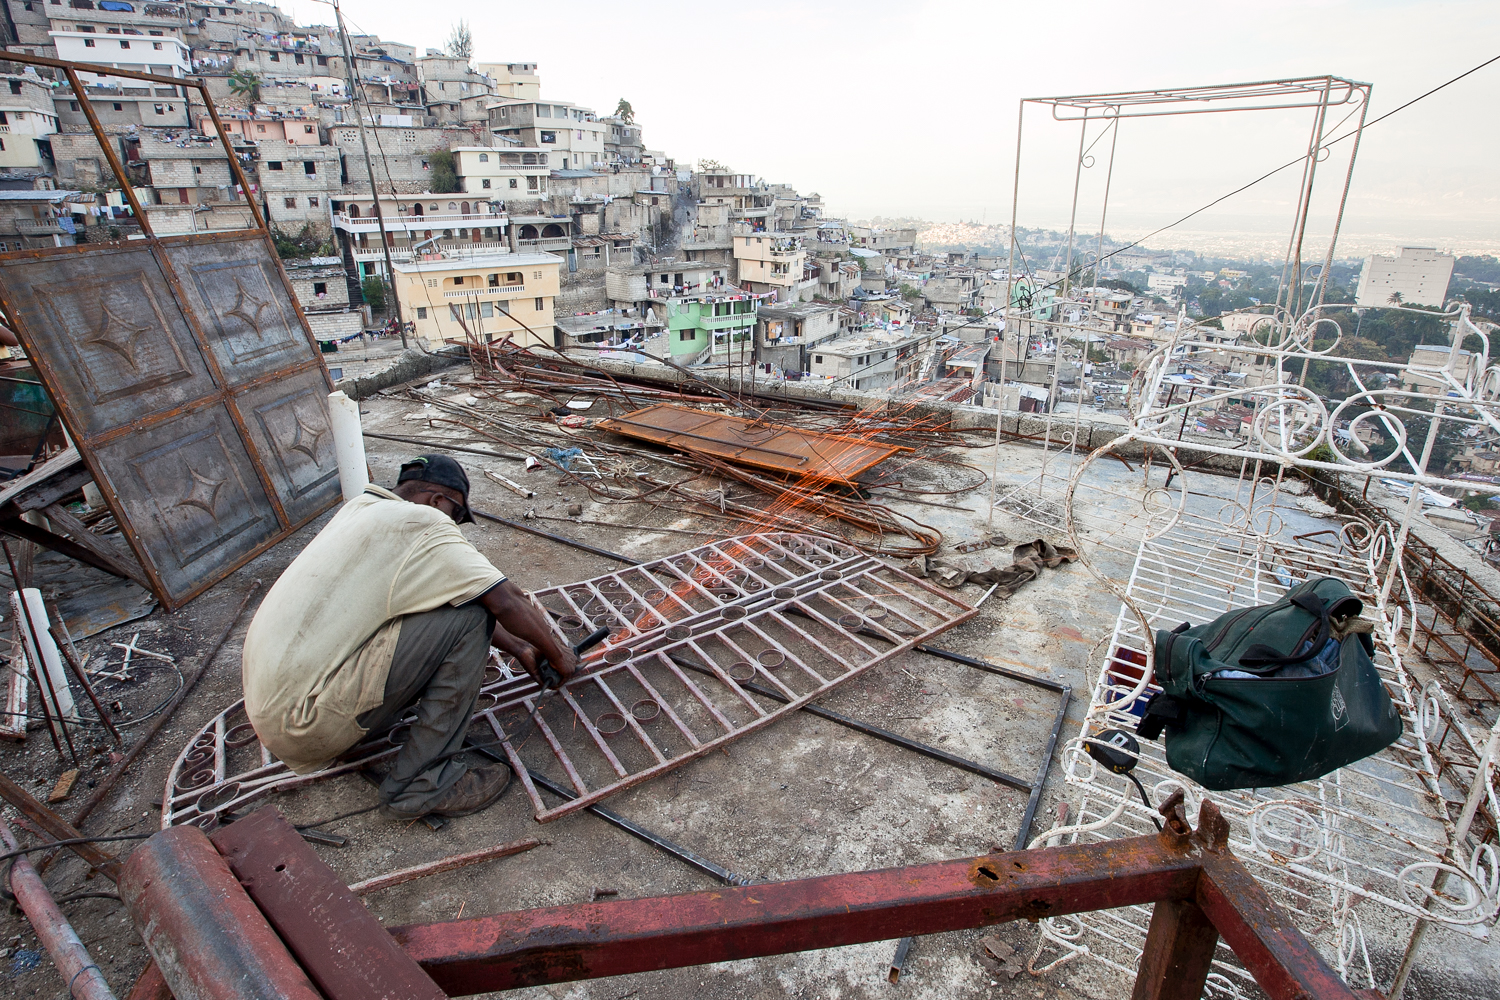 Views into overbuilt and crowded cities outside of the village act as a vivid reminder that progress remains thwarted and choked as few people attempt to rebuild and develop.